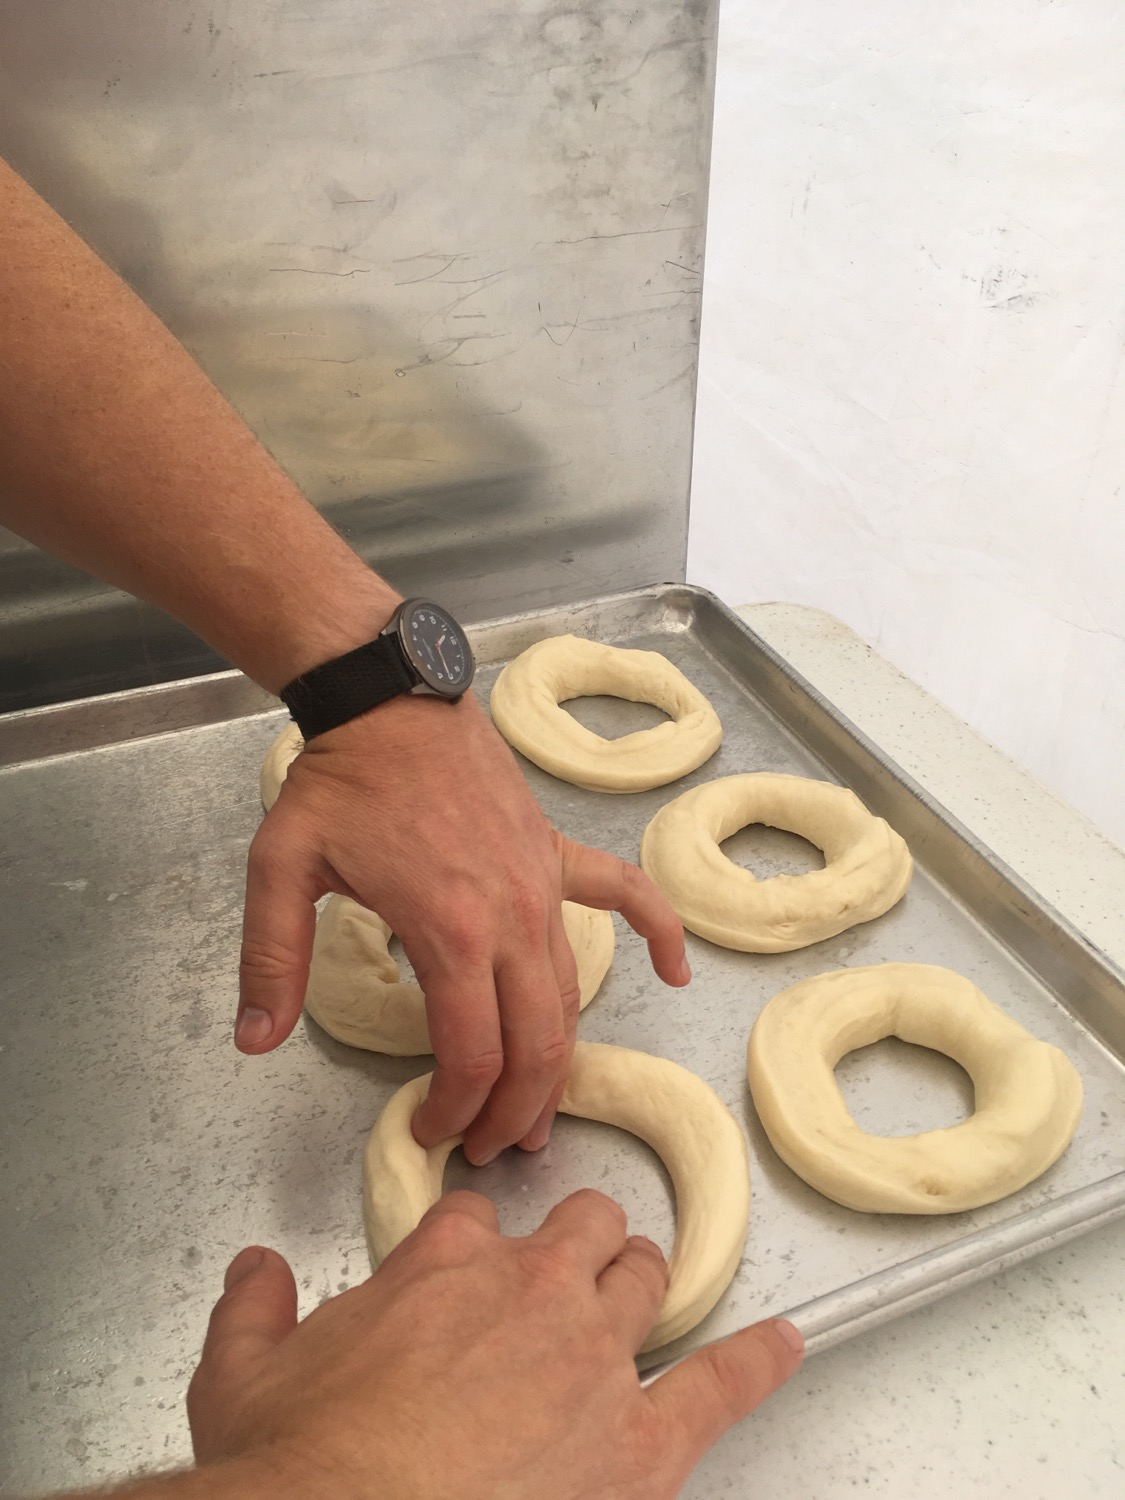 stretching donuts